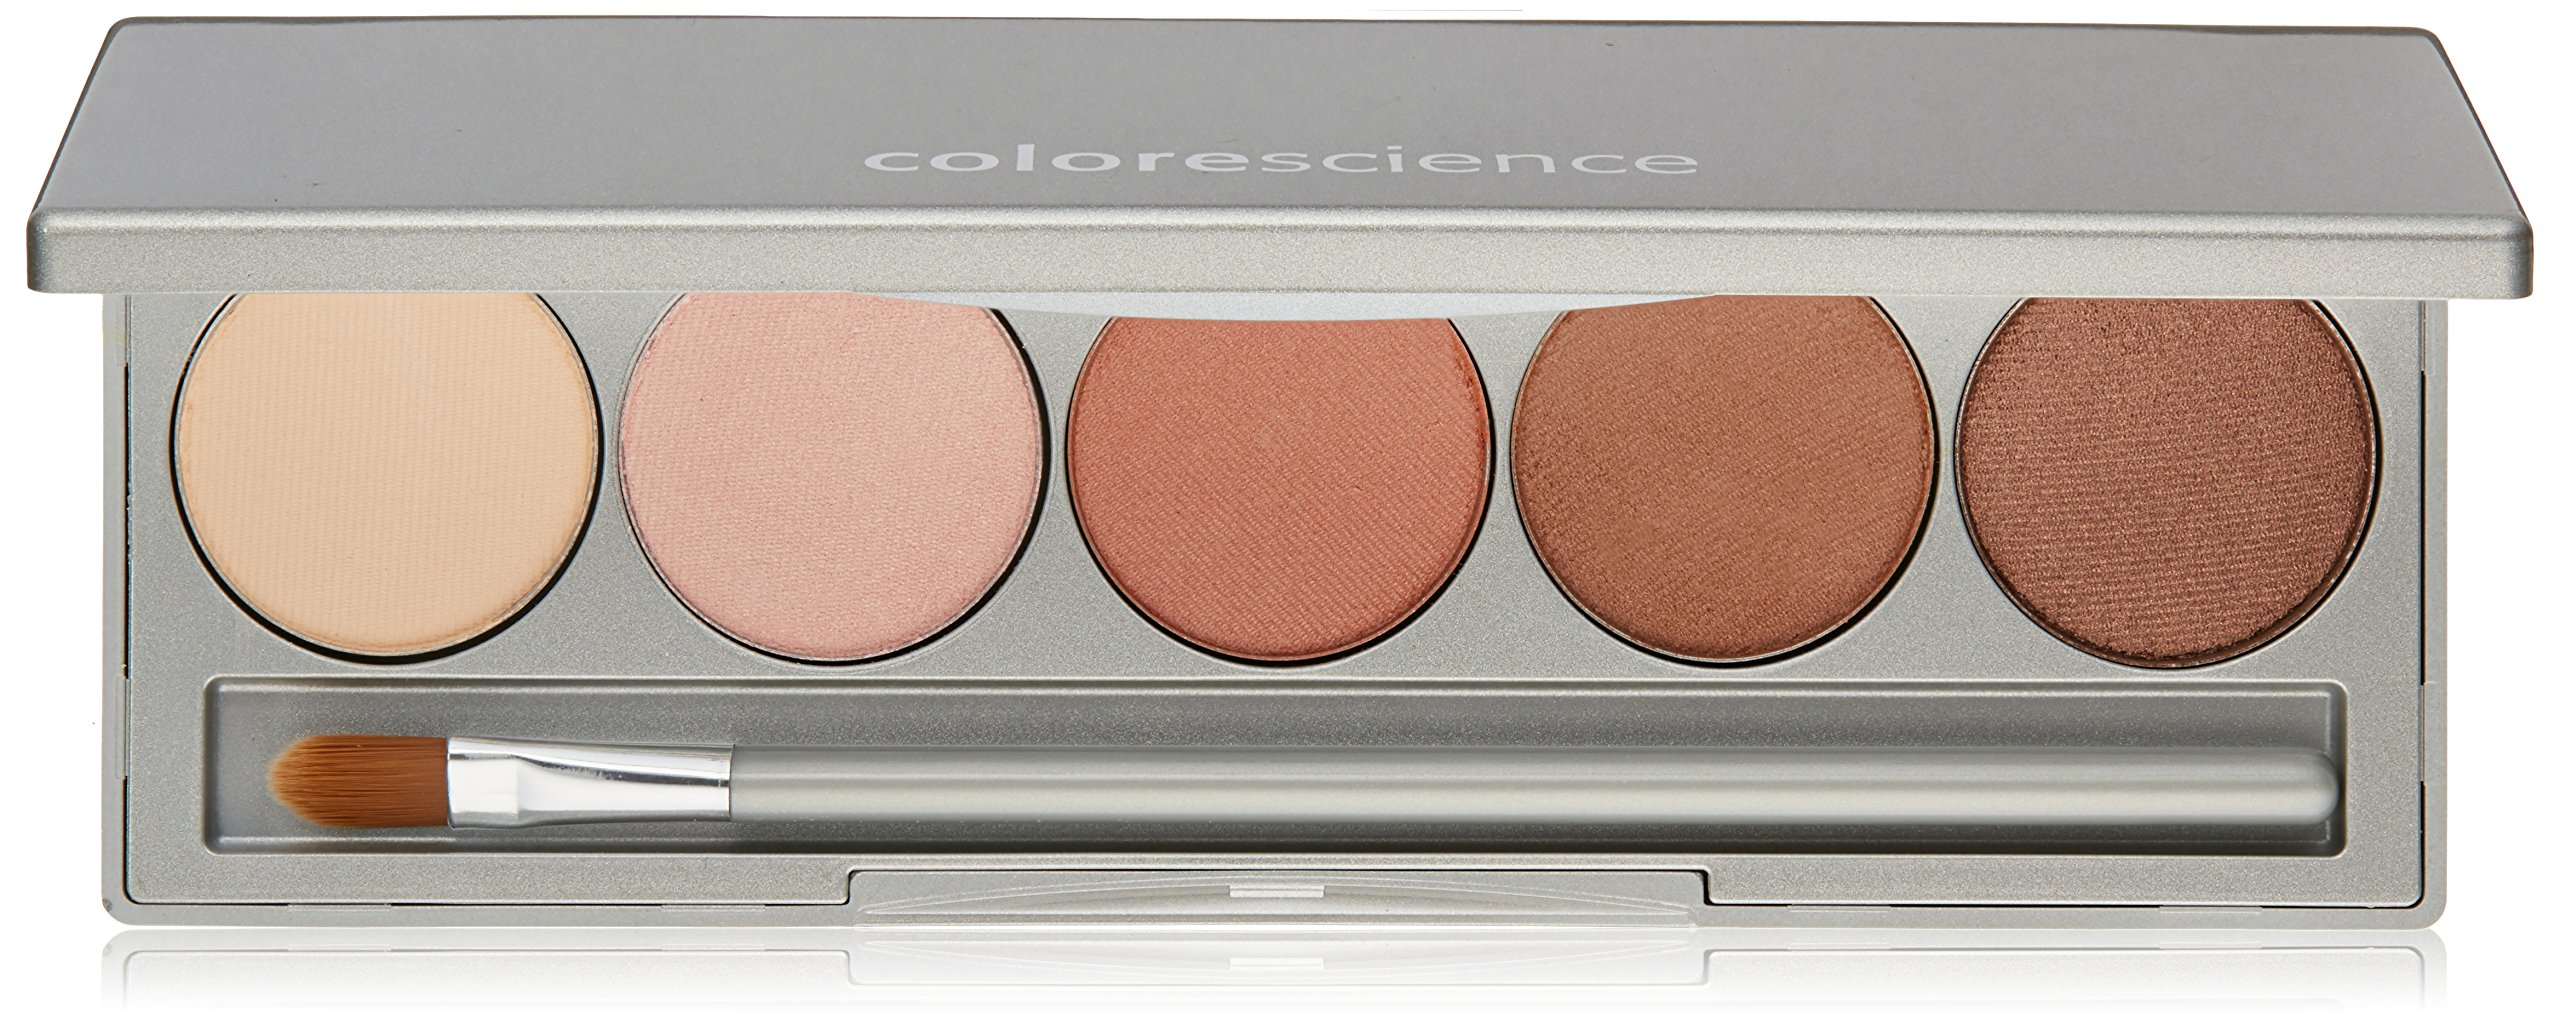 Colorescience Mineral Makeup Palette, Beauty On the Go, 5 Neutralizing Makeup Shades by Colorescience